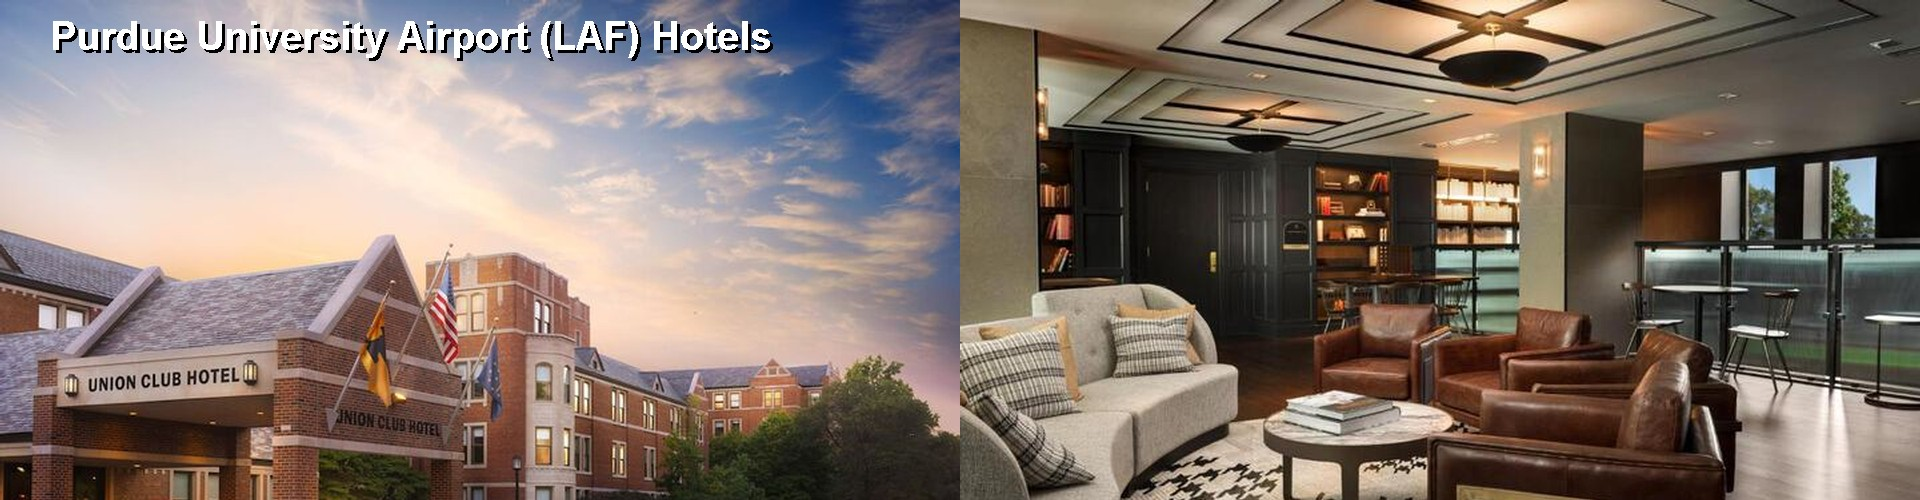 5 Best Hotels near Purdue University Airport (LAF)